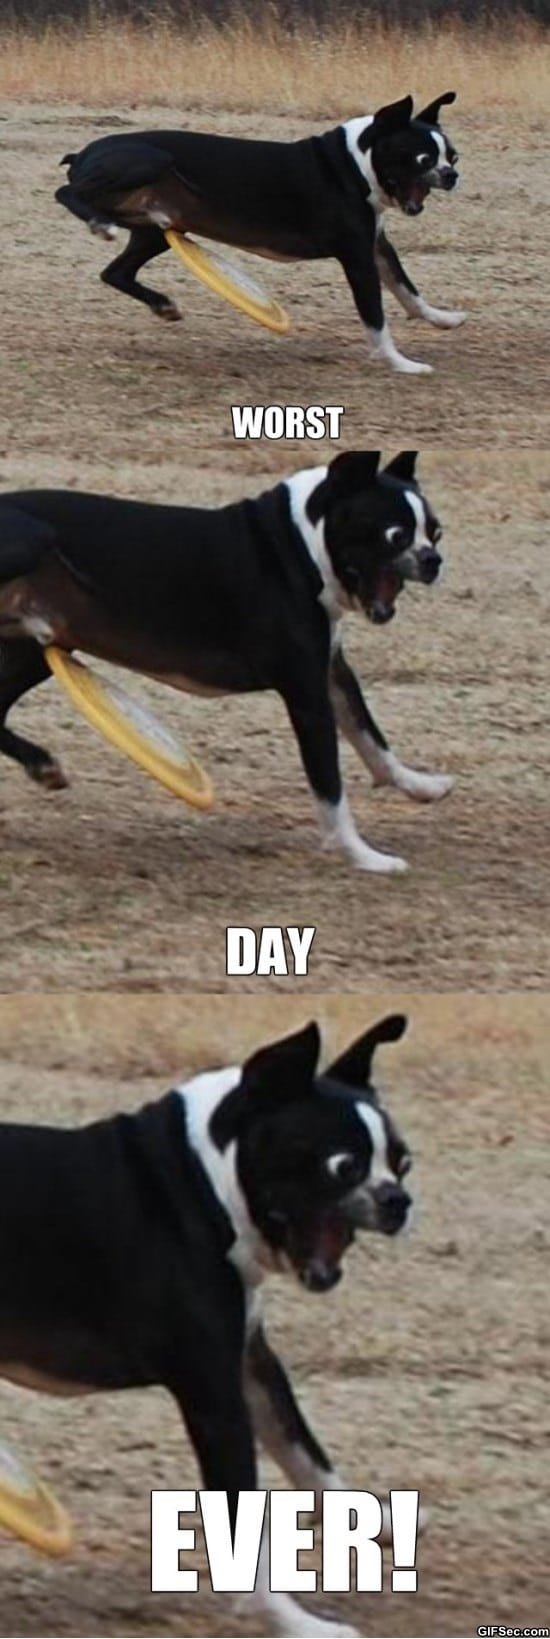 bad-luck-dog-meme-funny-pictures